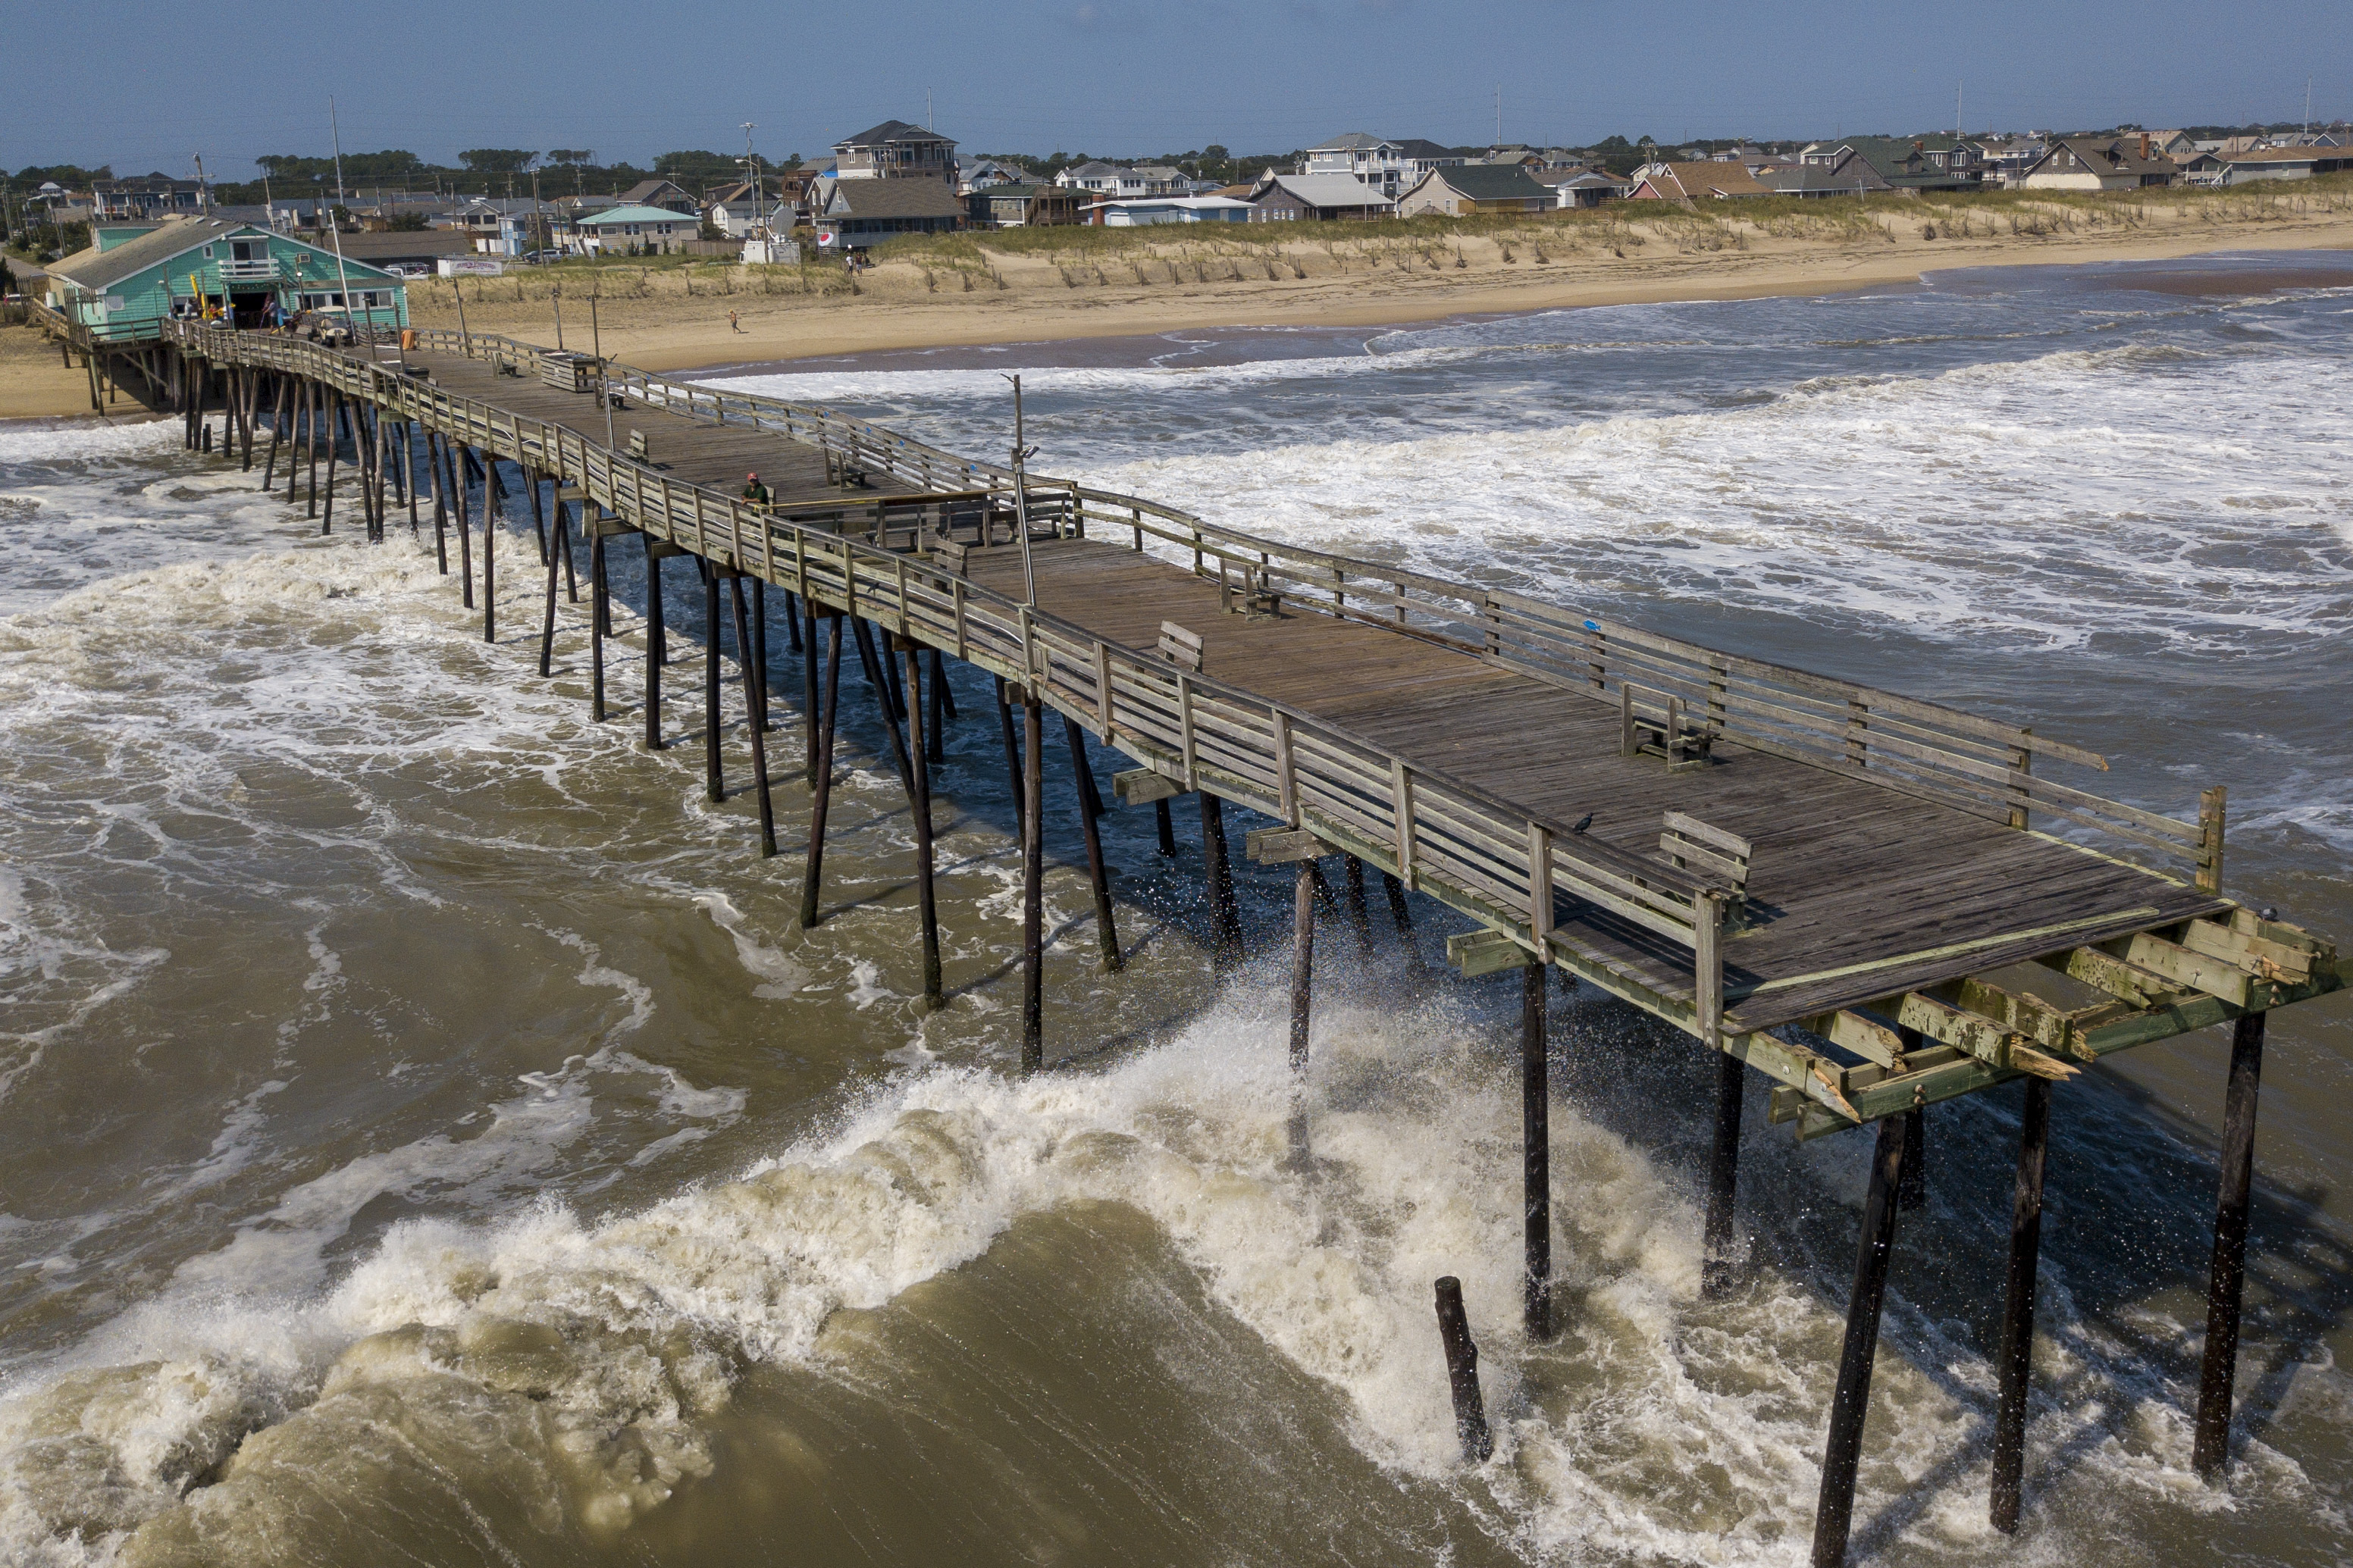 Waves continue to pound the Avalon pier after a large portion of the pier was washed away by Hurricane Dorian which moved through the area Friday in Kill Devil Hills, NC., Saturday, Sept. 7, 2019. (AP Photo/Steve Helber)